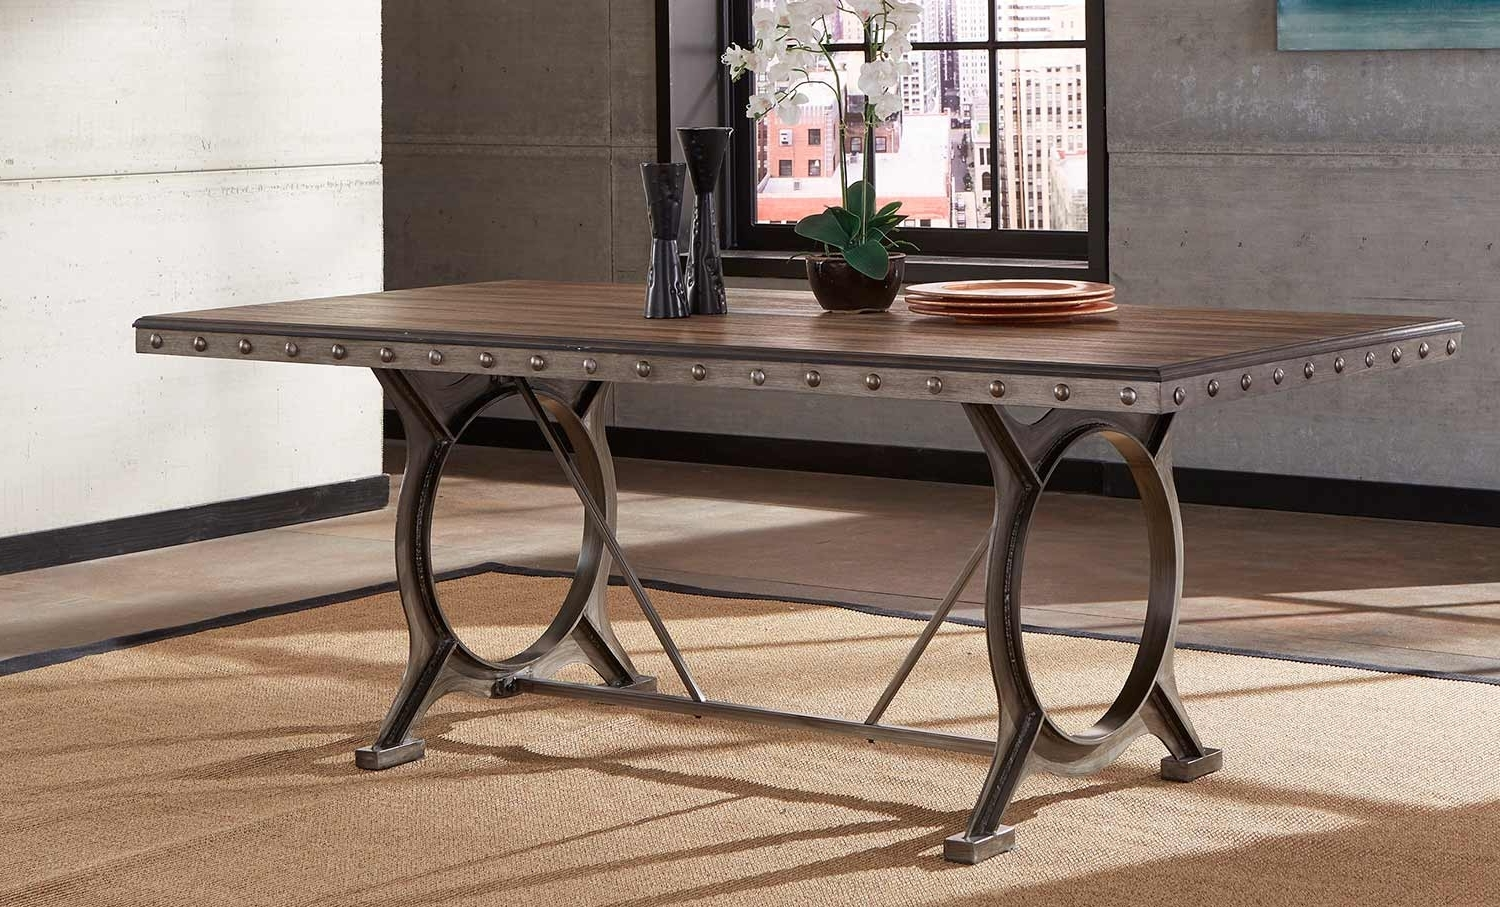 Brushed Metal Dining Tables Intended For Most Current Hillsdale Paddock Rectangle Dining Table – Brushed Steel Metal (View 4 of 25)